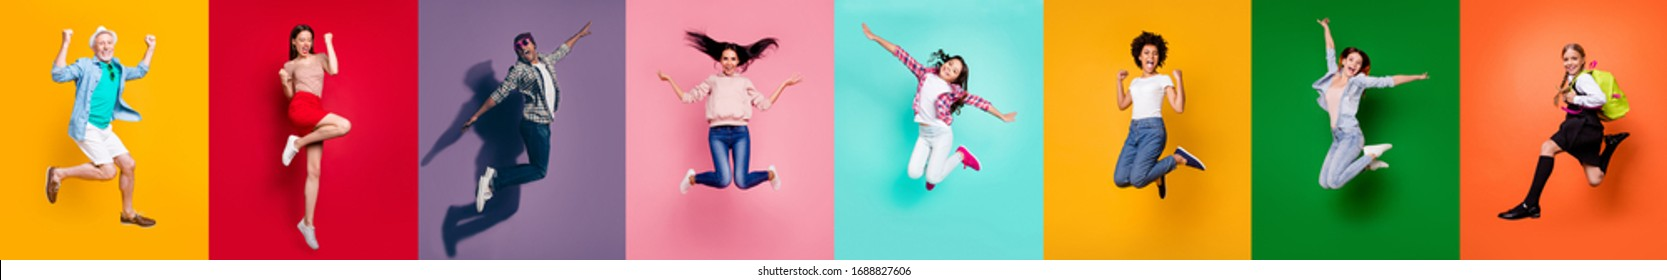 Photo collage of eight cheerful glad optimistic carefree feeling great old preteen multiethnic guy millennial people jumping high up achieving victory triumph isolated over multicolored background